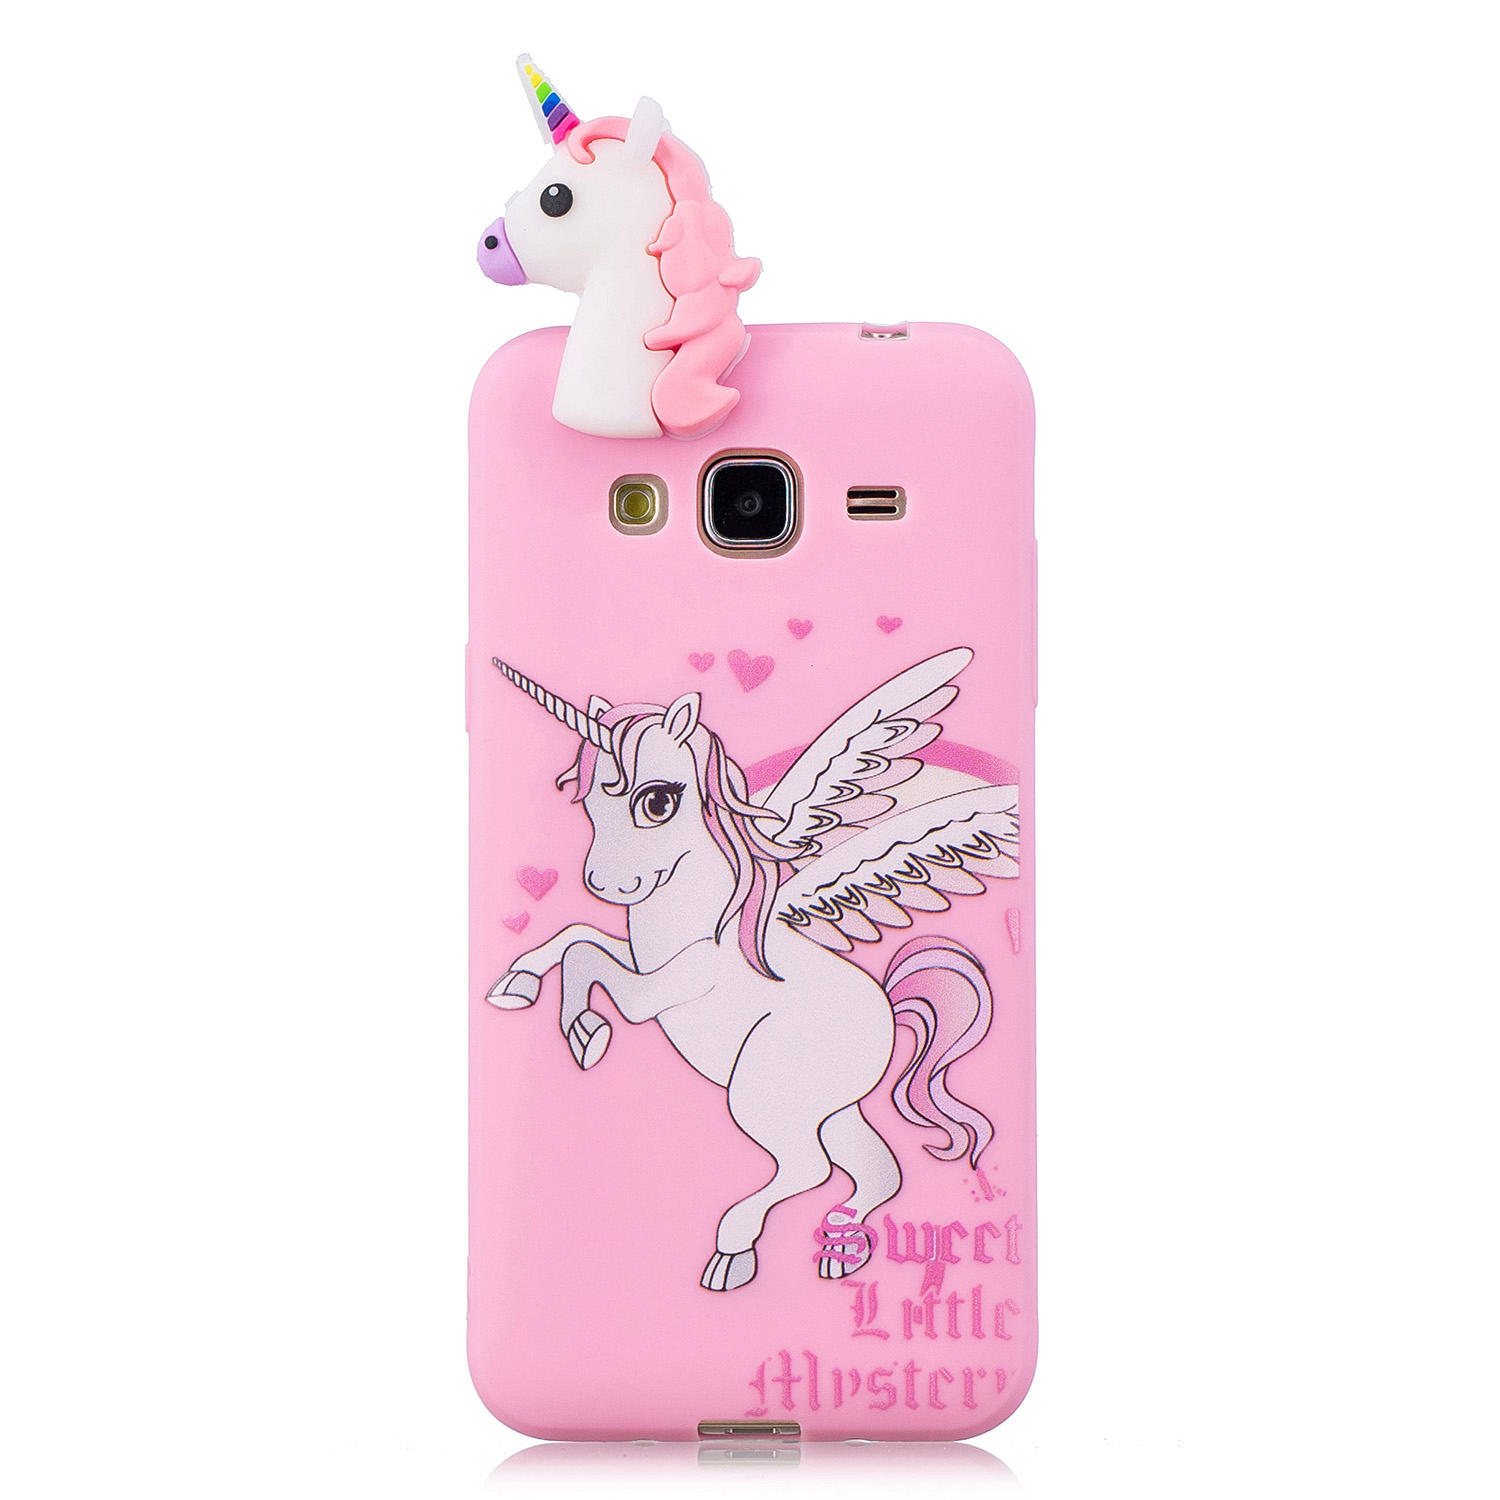 Lovely Cartoon White Squishy Phone Cases for samsung galaxy j3 2016 Case Cute Smiling Cloud Soft Silicone stress relief Cover ...